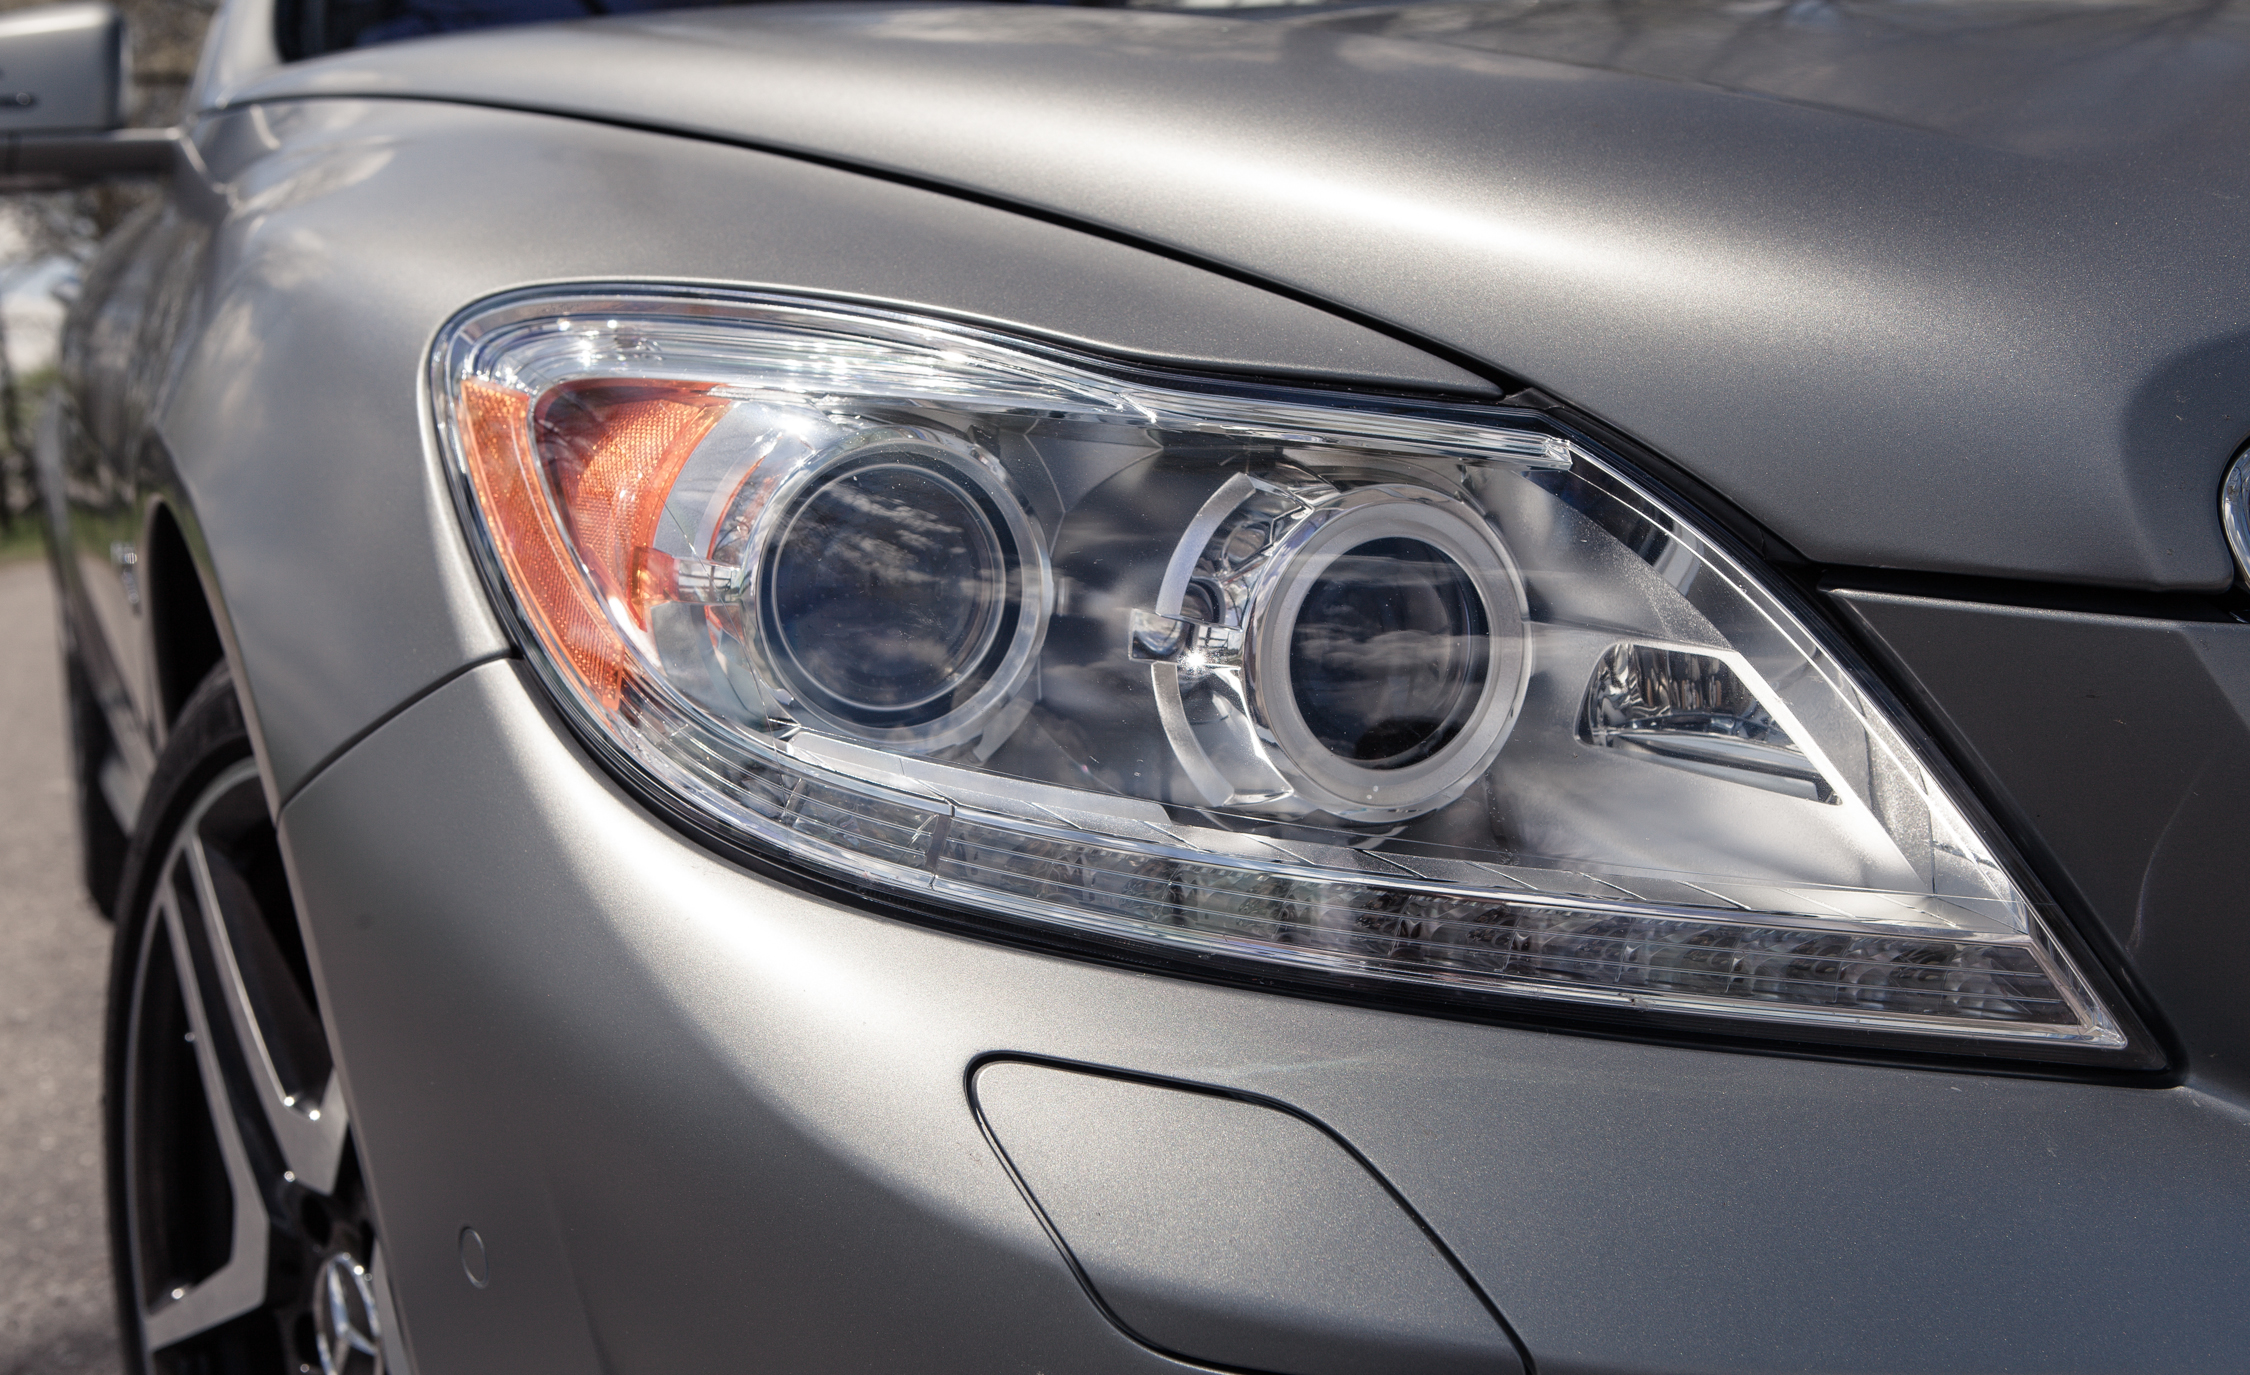 2013 Mercedes Benz CL65 AMG Exterior View Headlight (Photo 6 of 27)